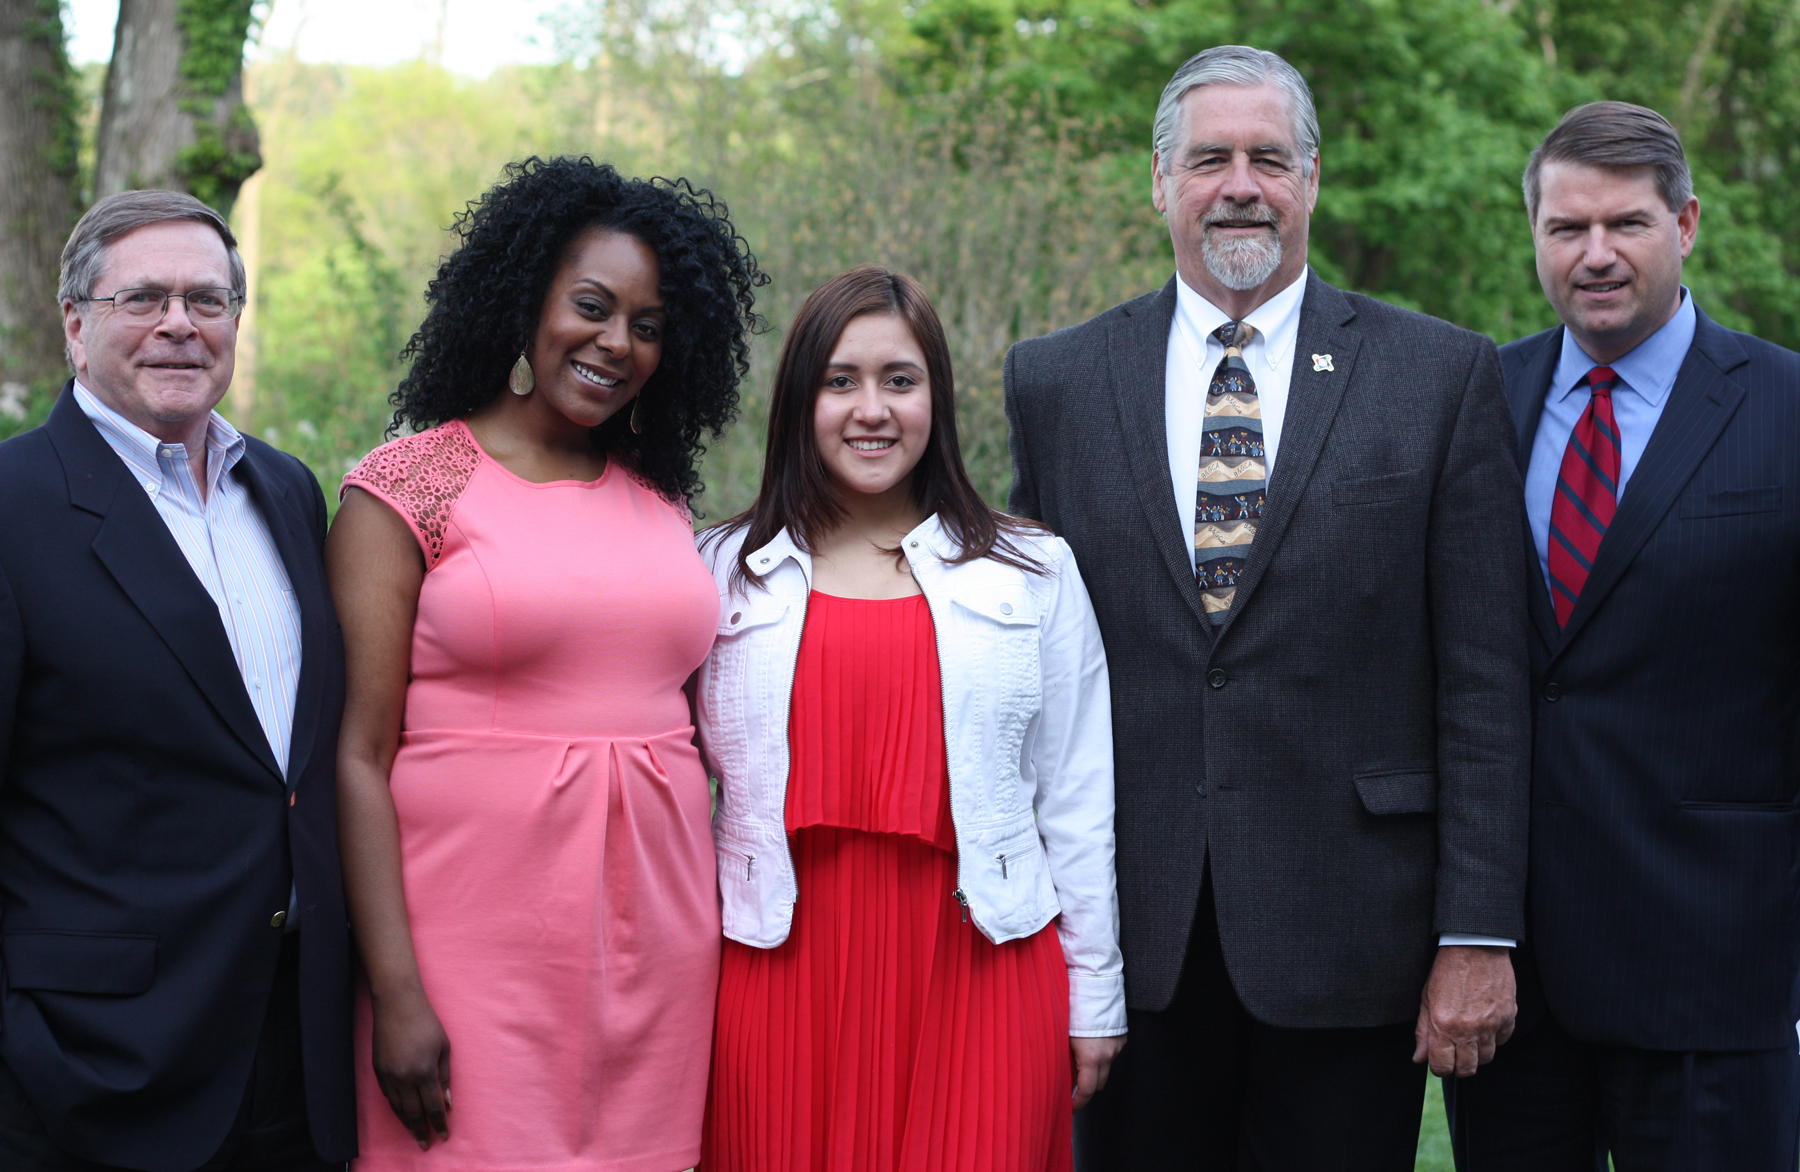 Cristy Lopez-Duarte, center, is The Boys & Girls Club of Northern Westchester 2014 Youth of the Year.